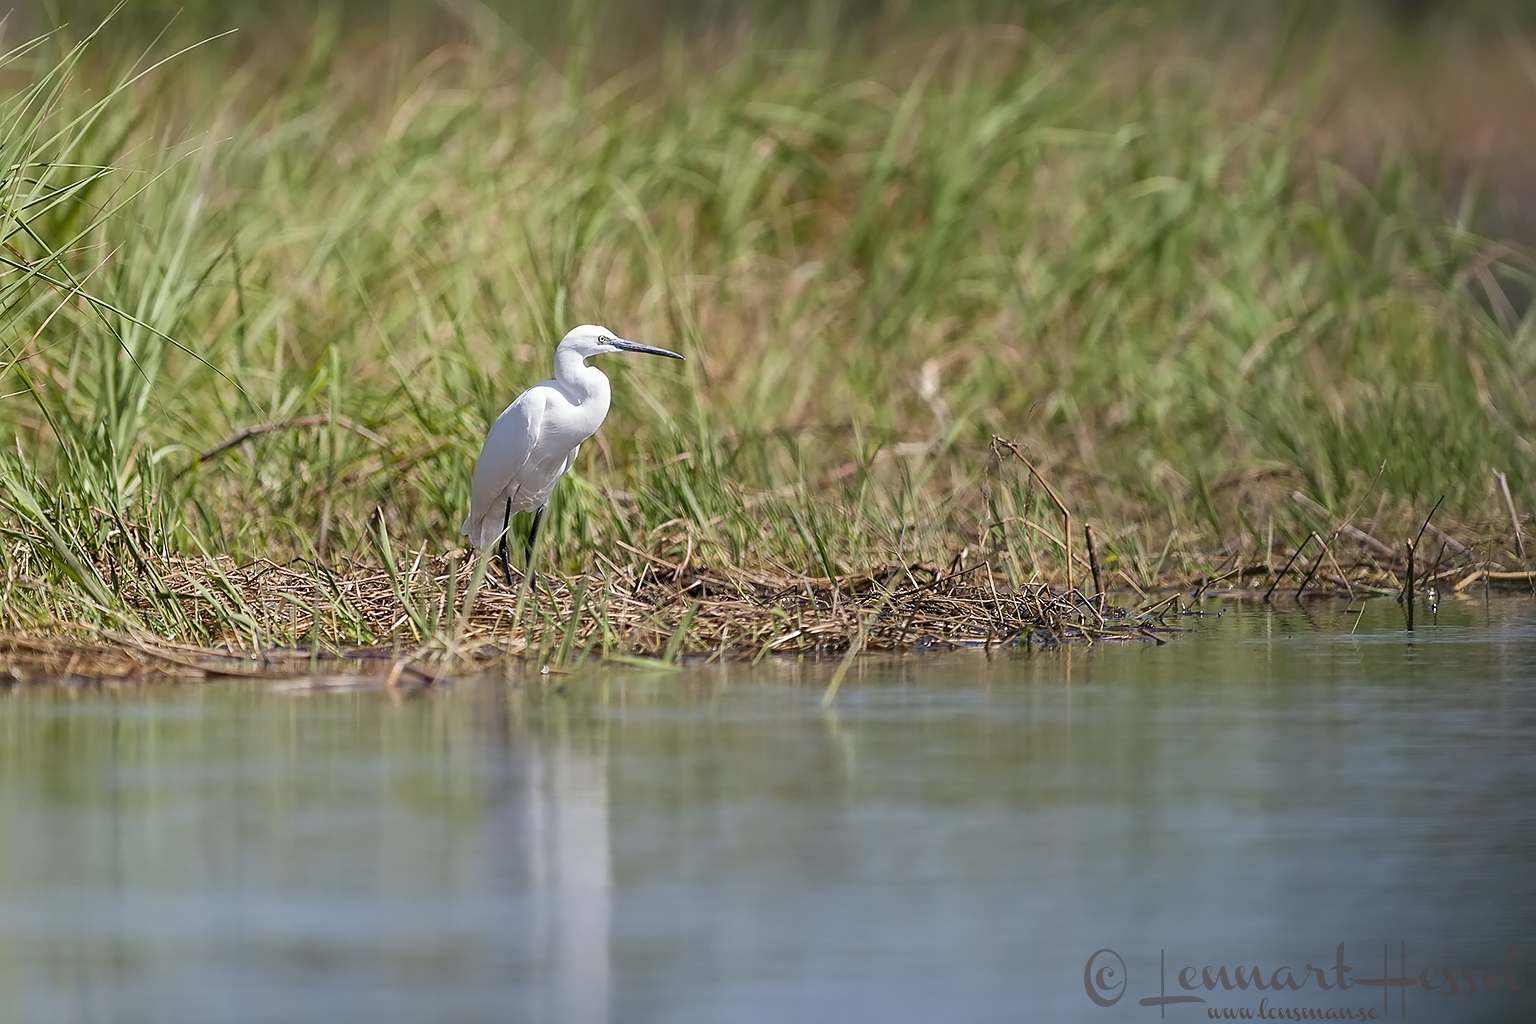 Little Egret in the Okavango Delta, Botswana